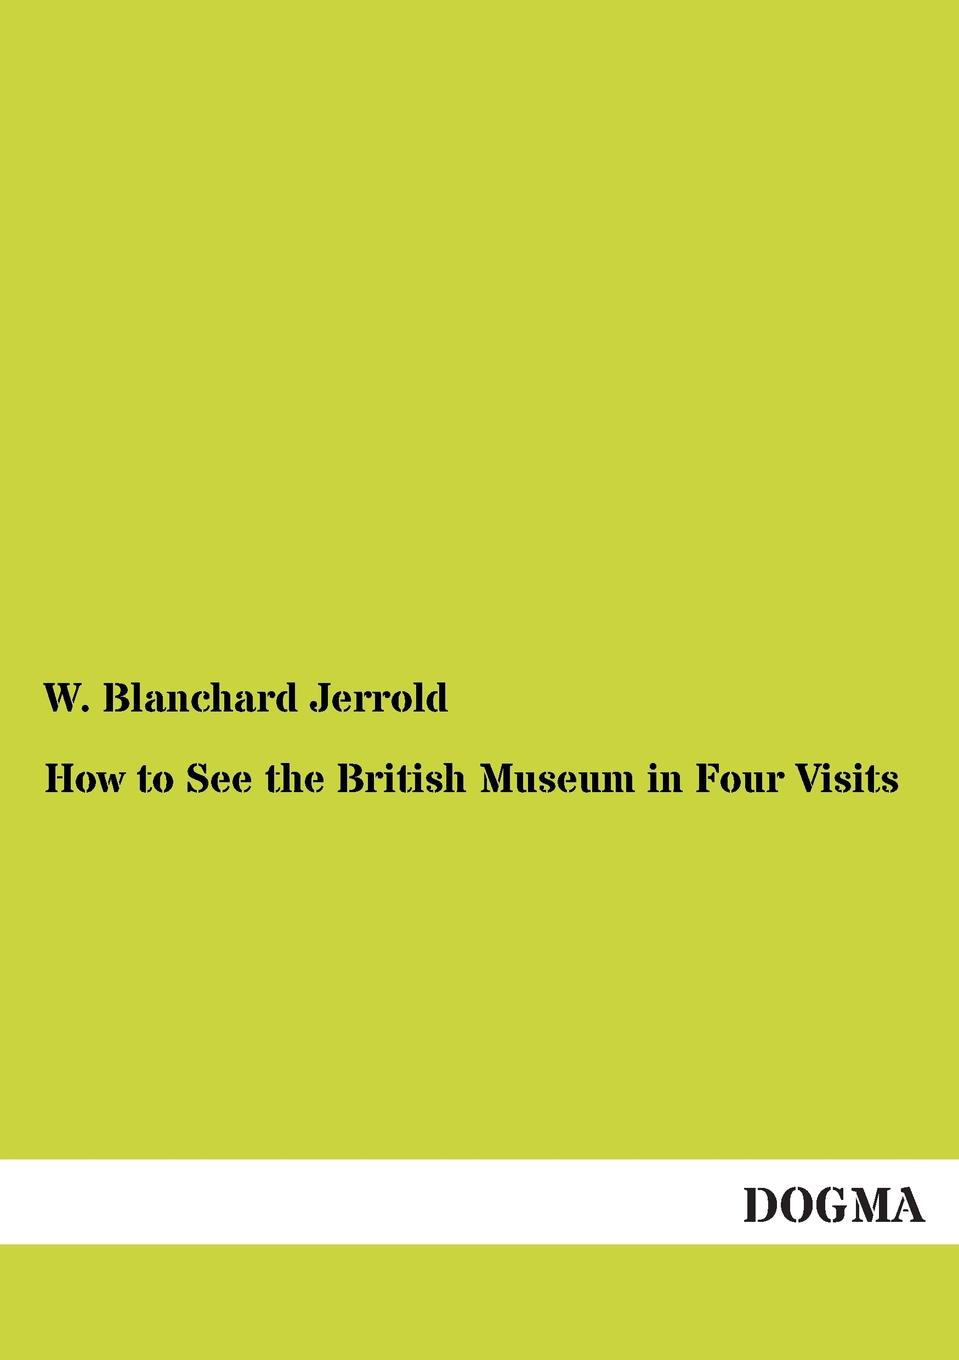 W. Blanchard Jerrold How to See the British Museum in Four Visits